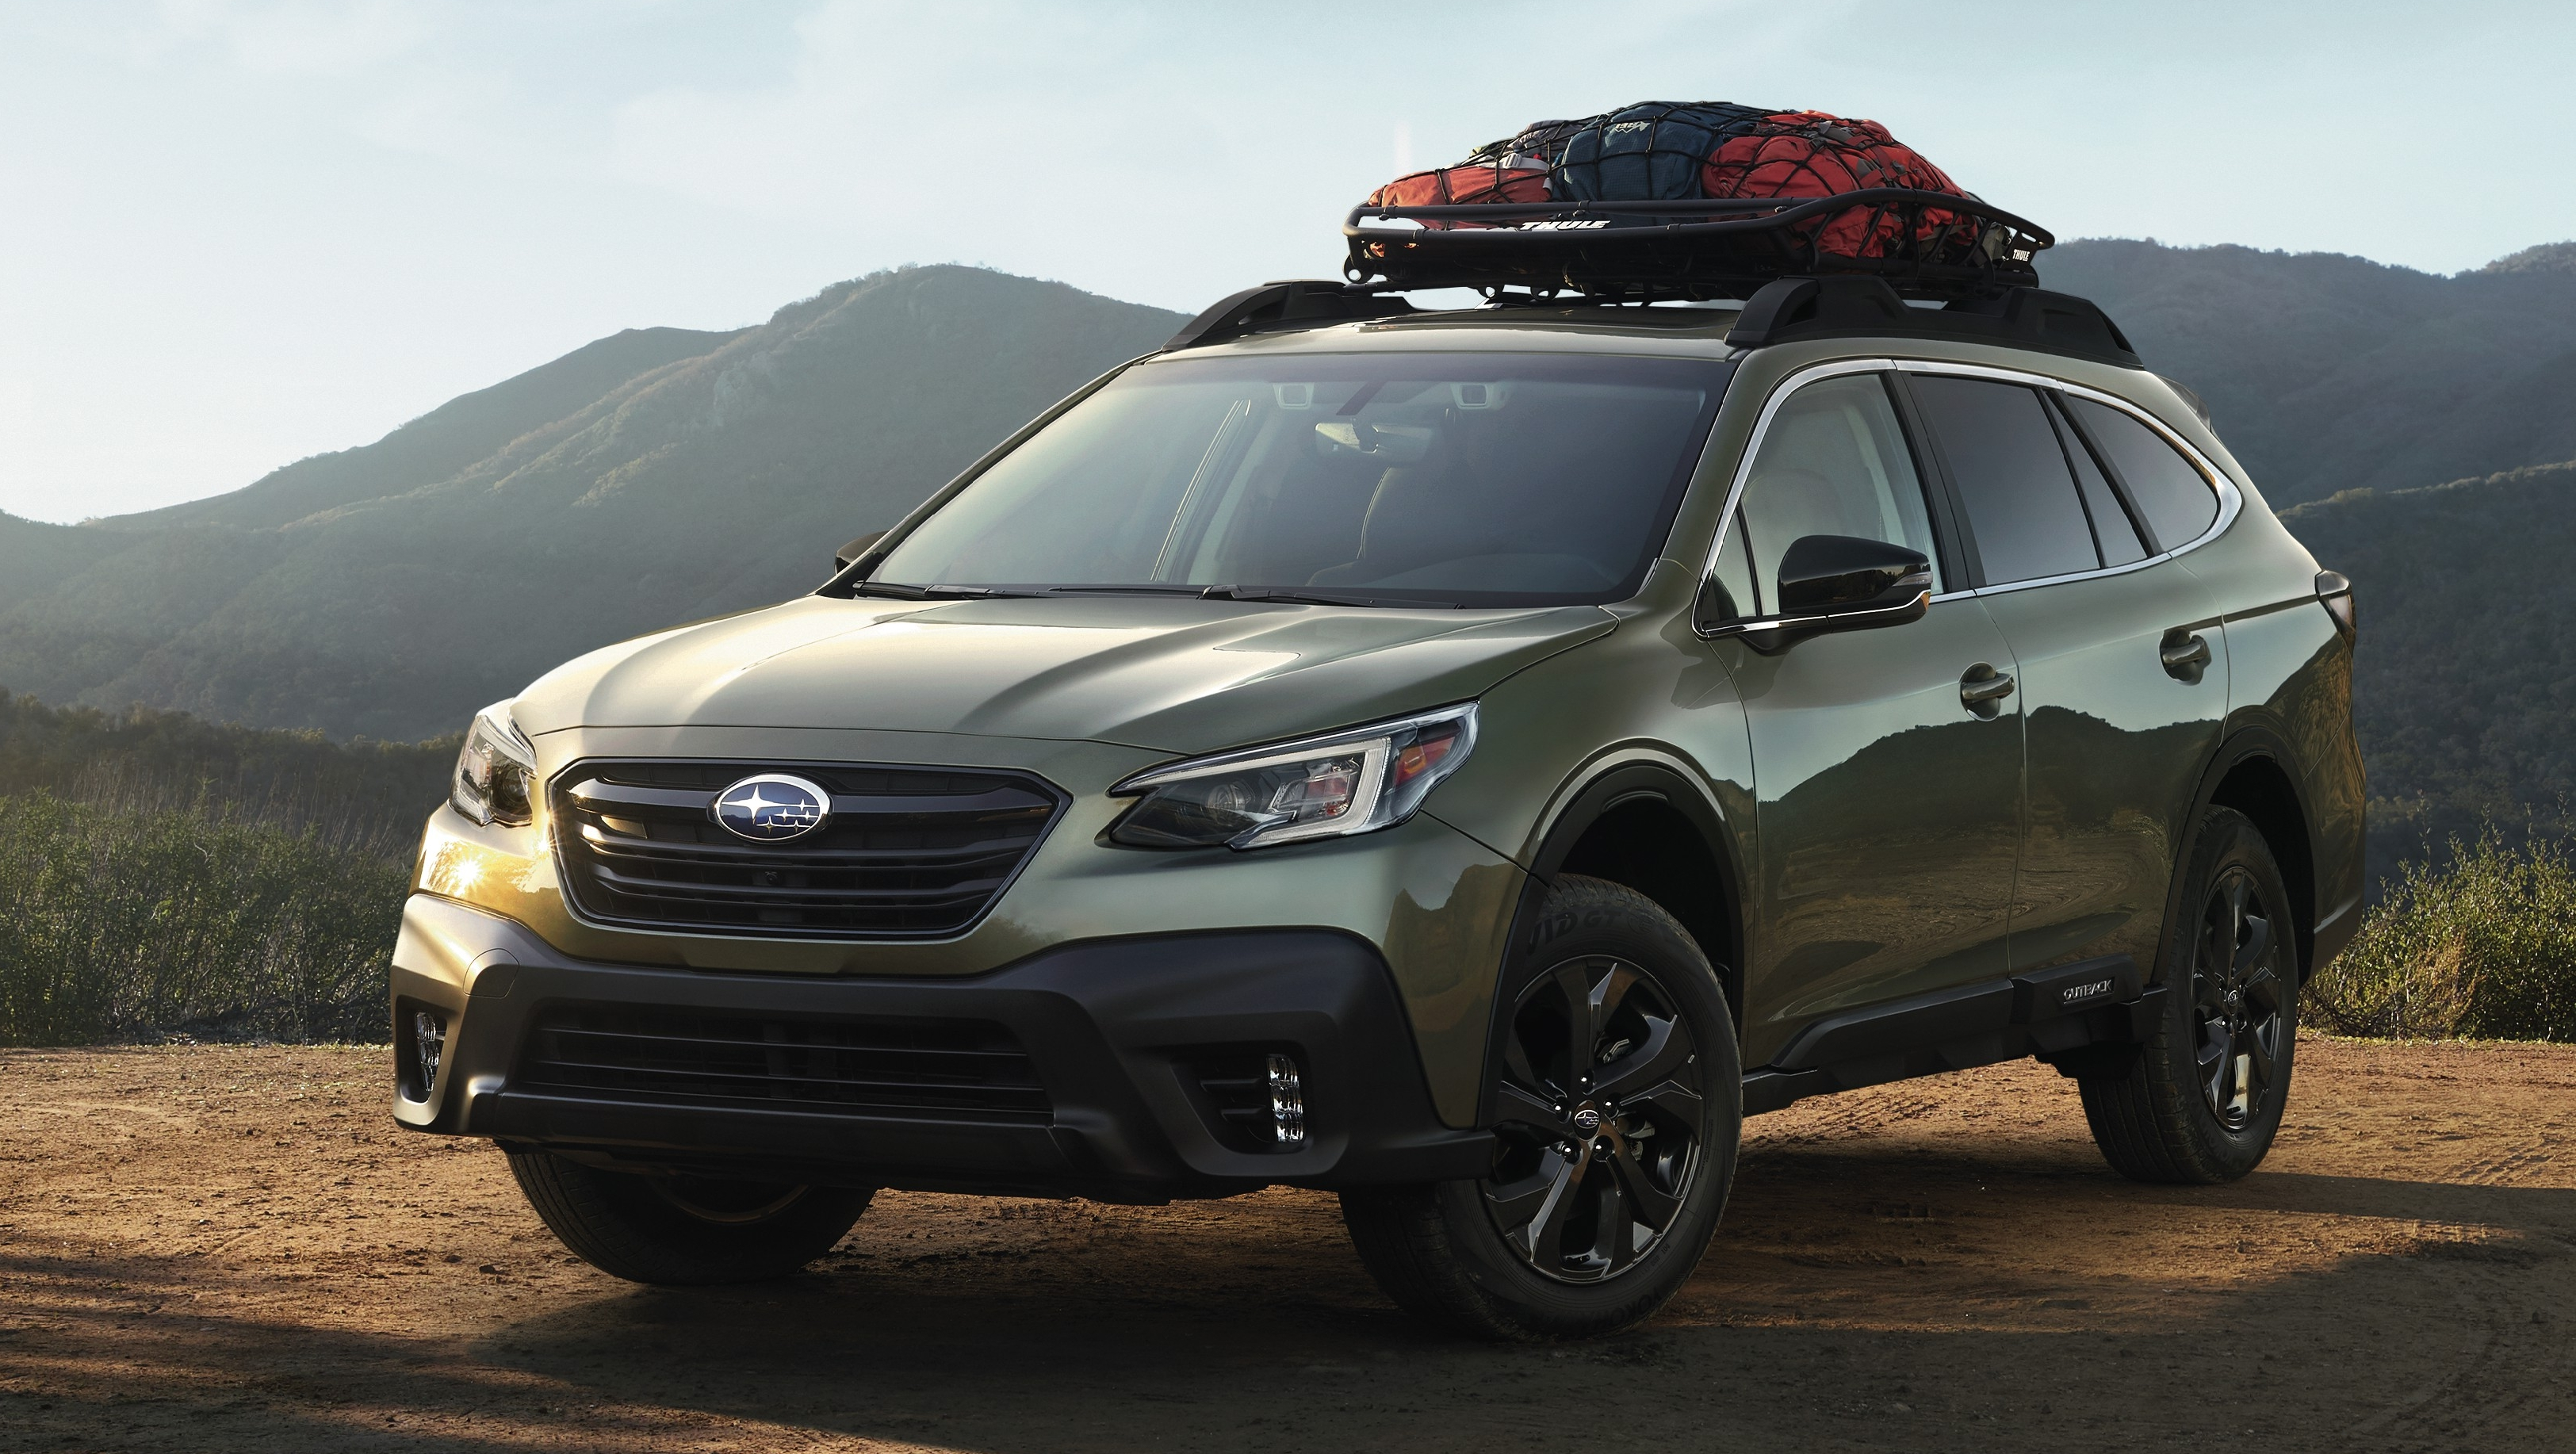 2020 Subaru Forester Redesign, Turbo, Review, And Engine Options >> 2020 Subaru Outback Top Speed